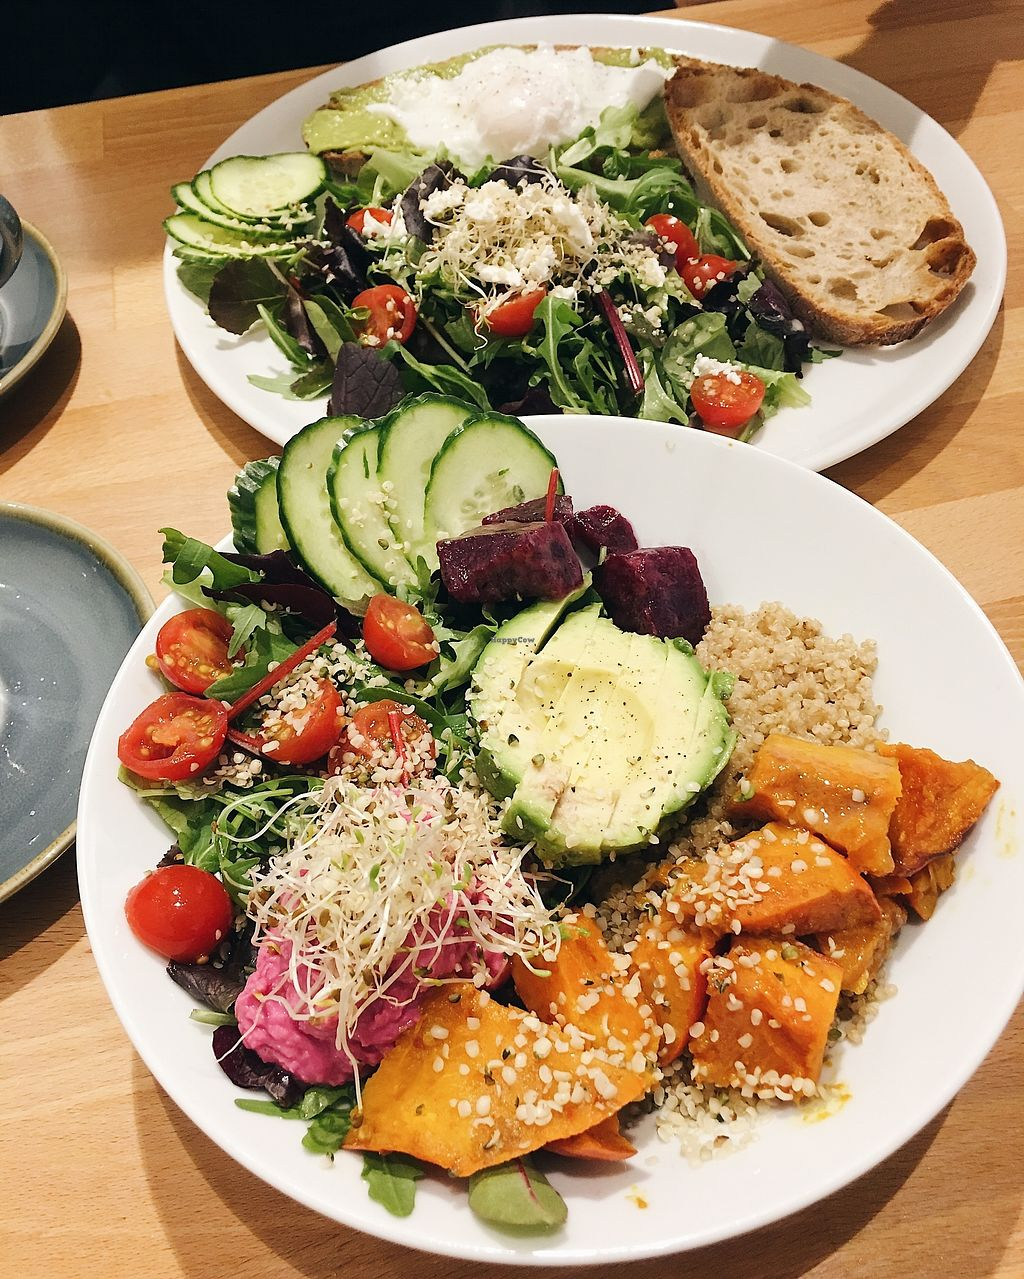 "Photo of Goodies Berlin - Warschauer Str  by <a href=""/members/profile/Fisty022"">Fisty022</a> <br/>HOT LUNCH BOWL <br/> December 19, 2017  - <a href='/contact/abuse/image/20405/337080'>Report</a>"